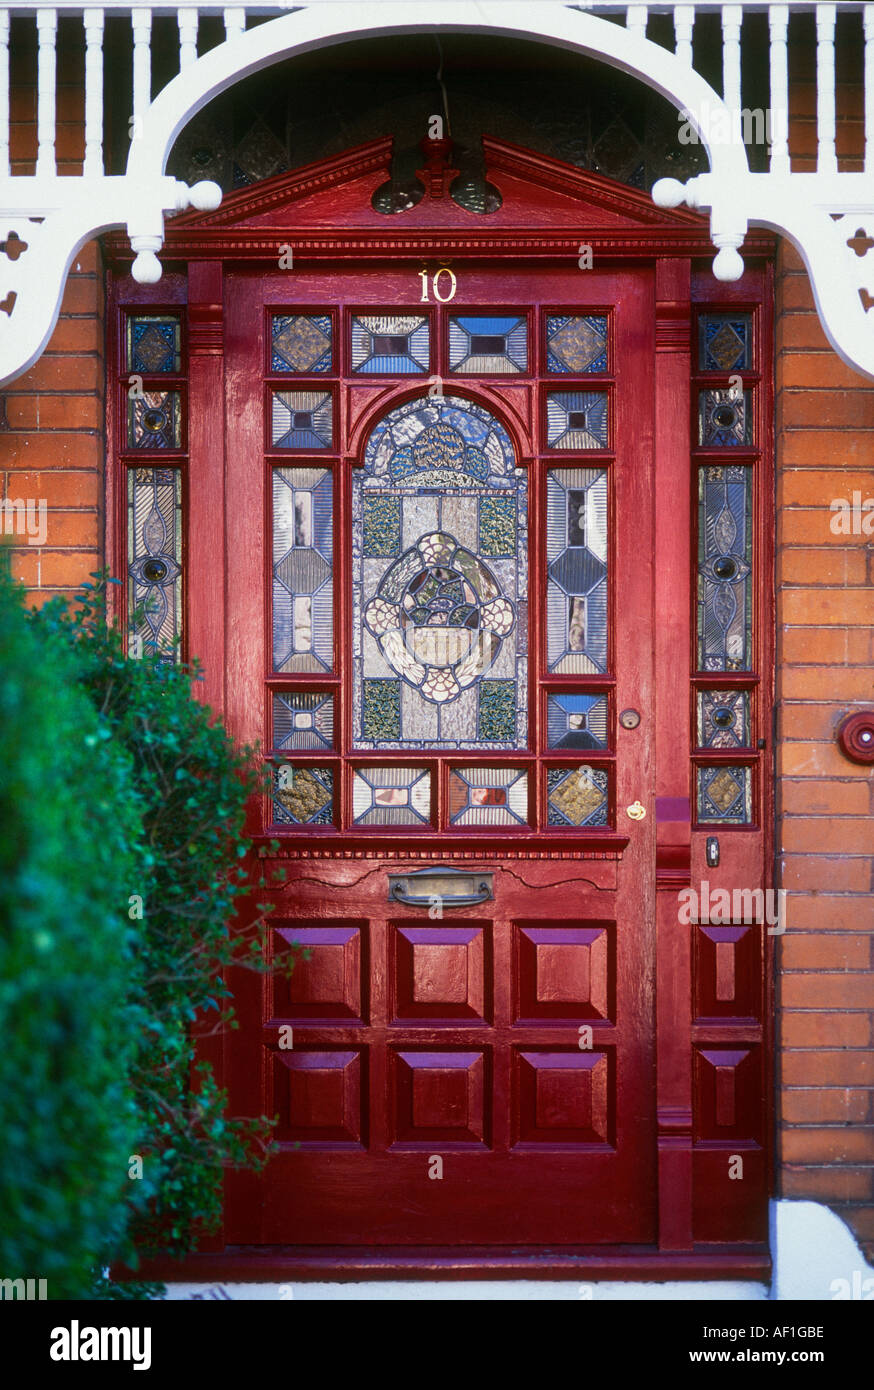 Exterior stained glass red front door british housing london stock photo royalty free image for Stained glass exterior front doors